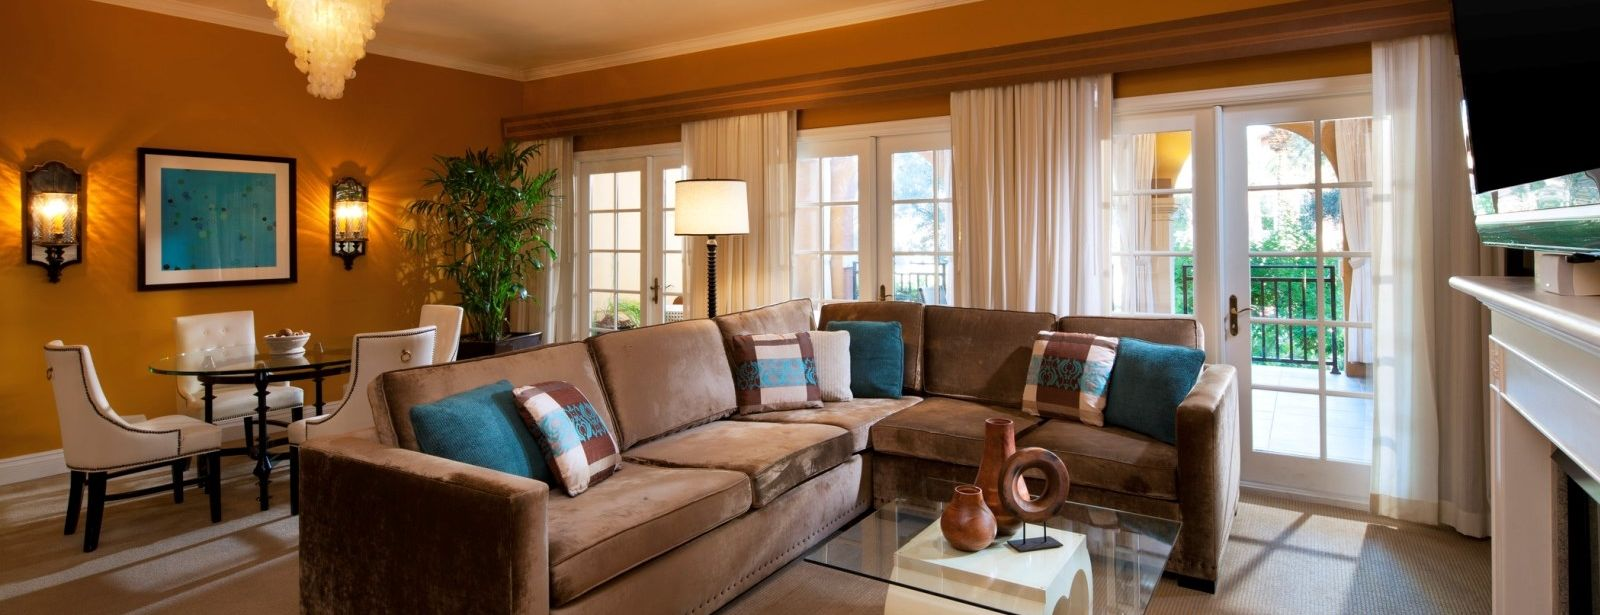 lake las vegas hotels - casbah suite